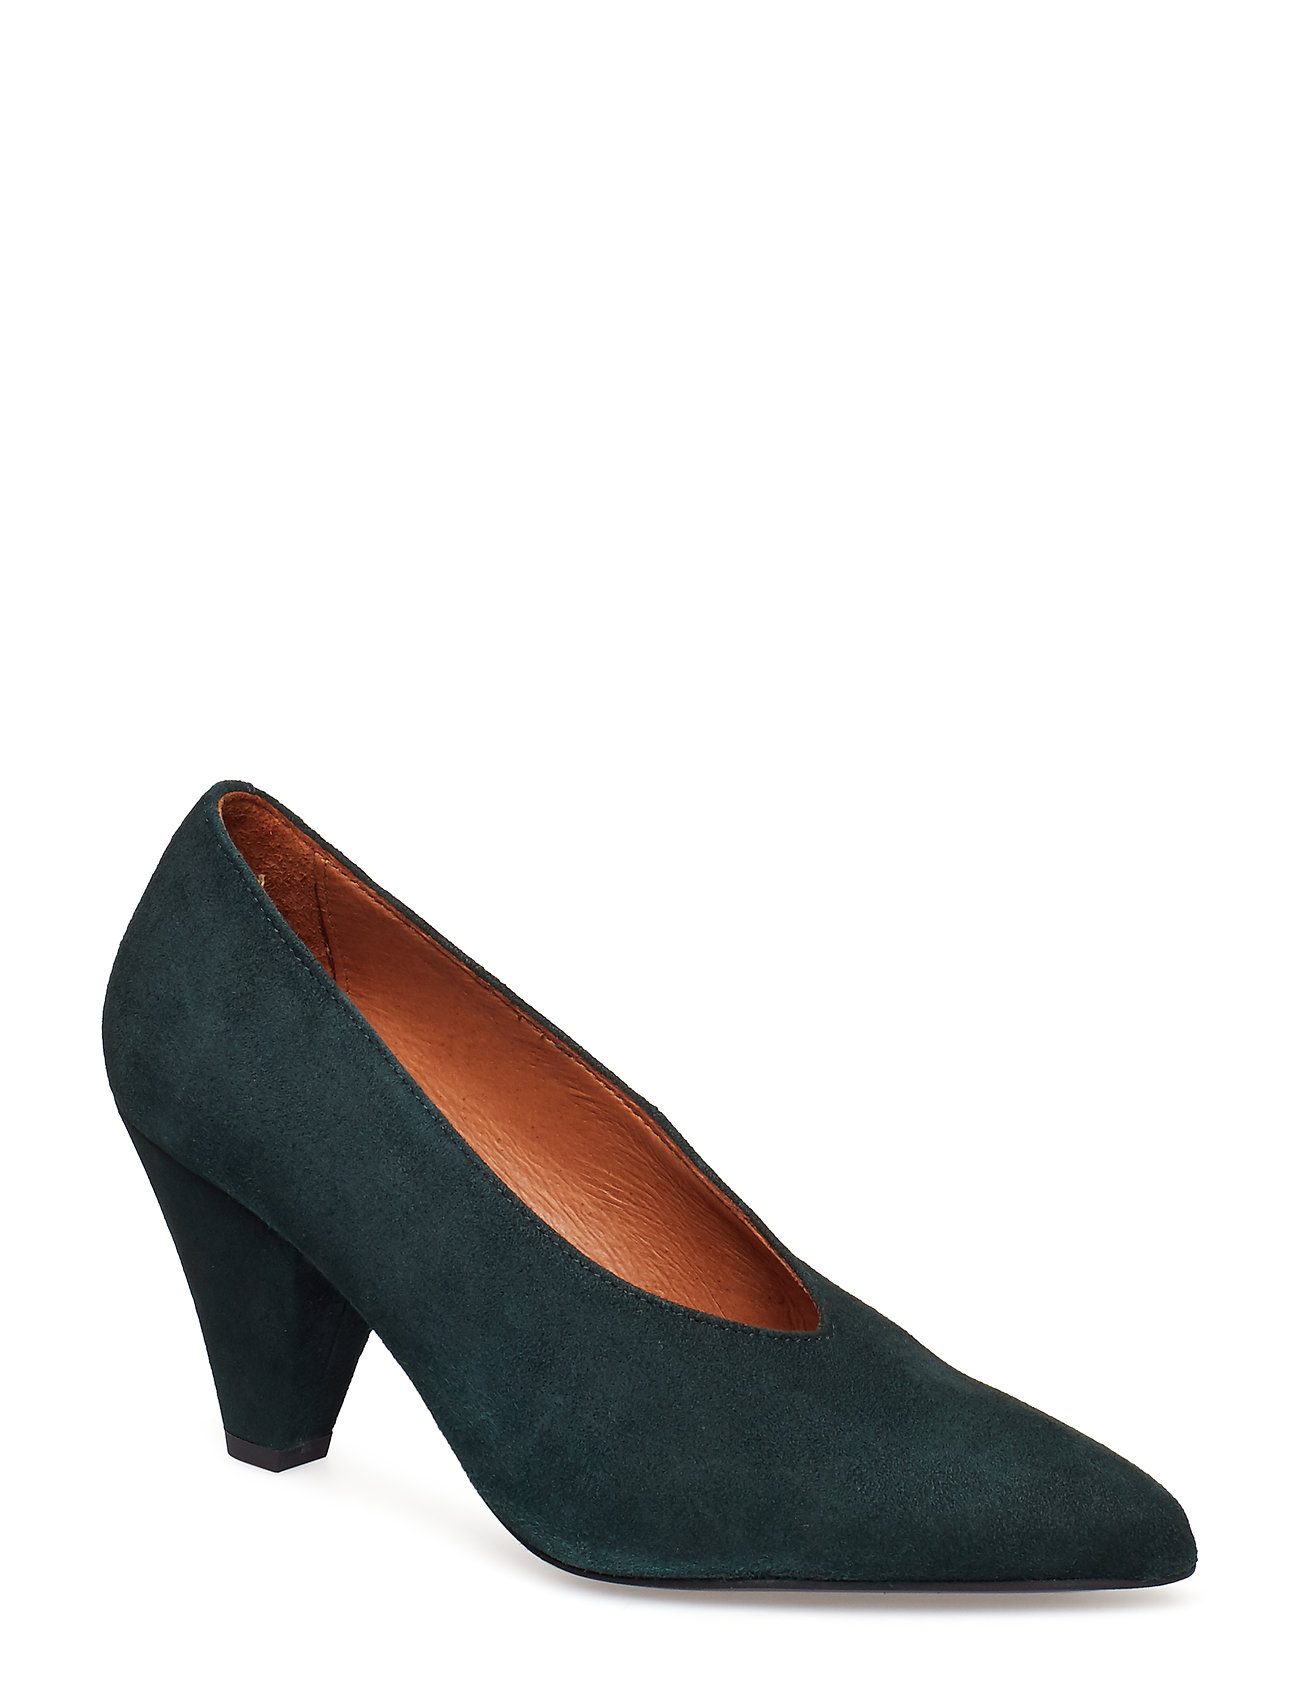 Twist & Tango Rio Heels Blackish Green - GREEN